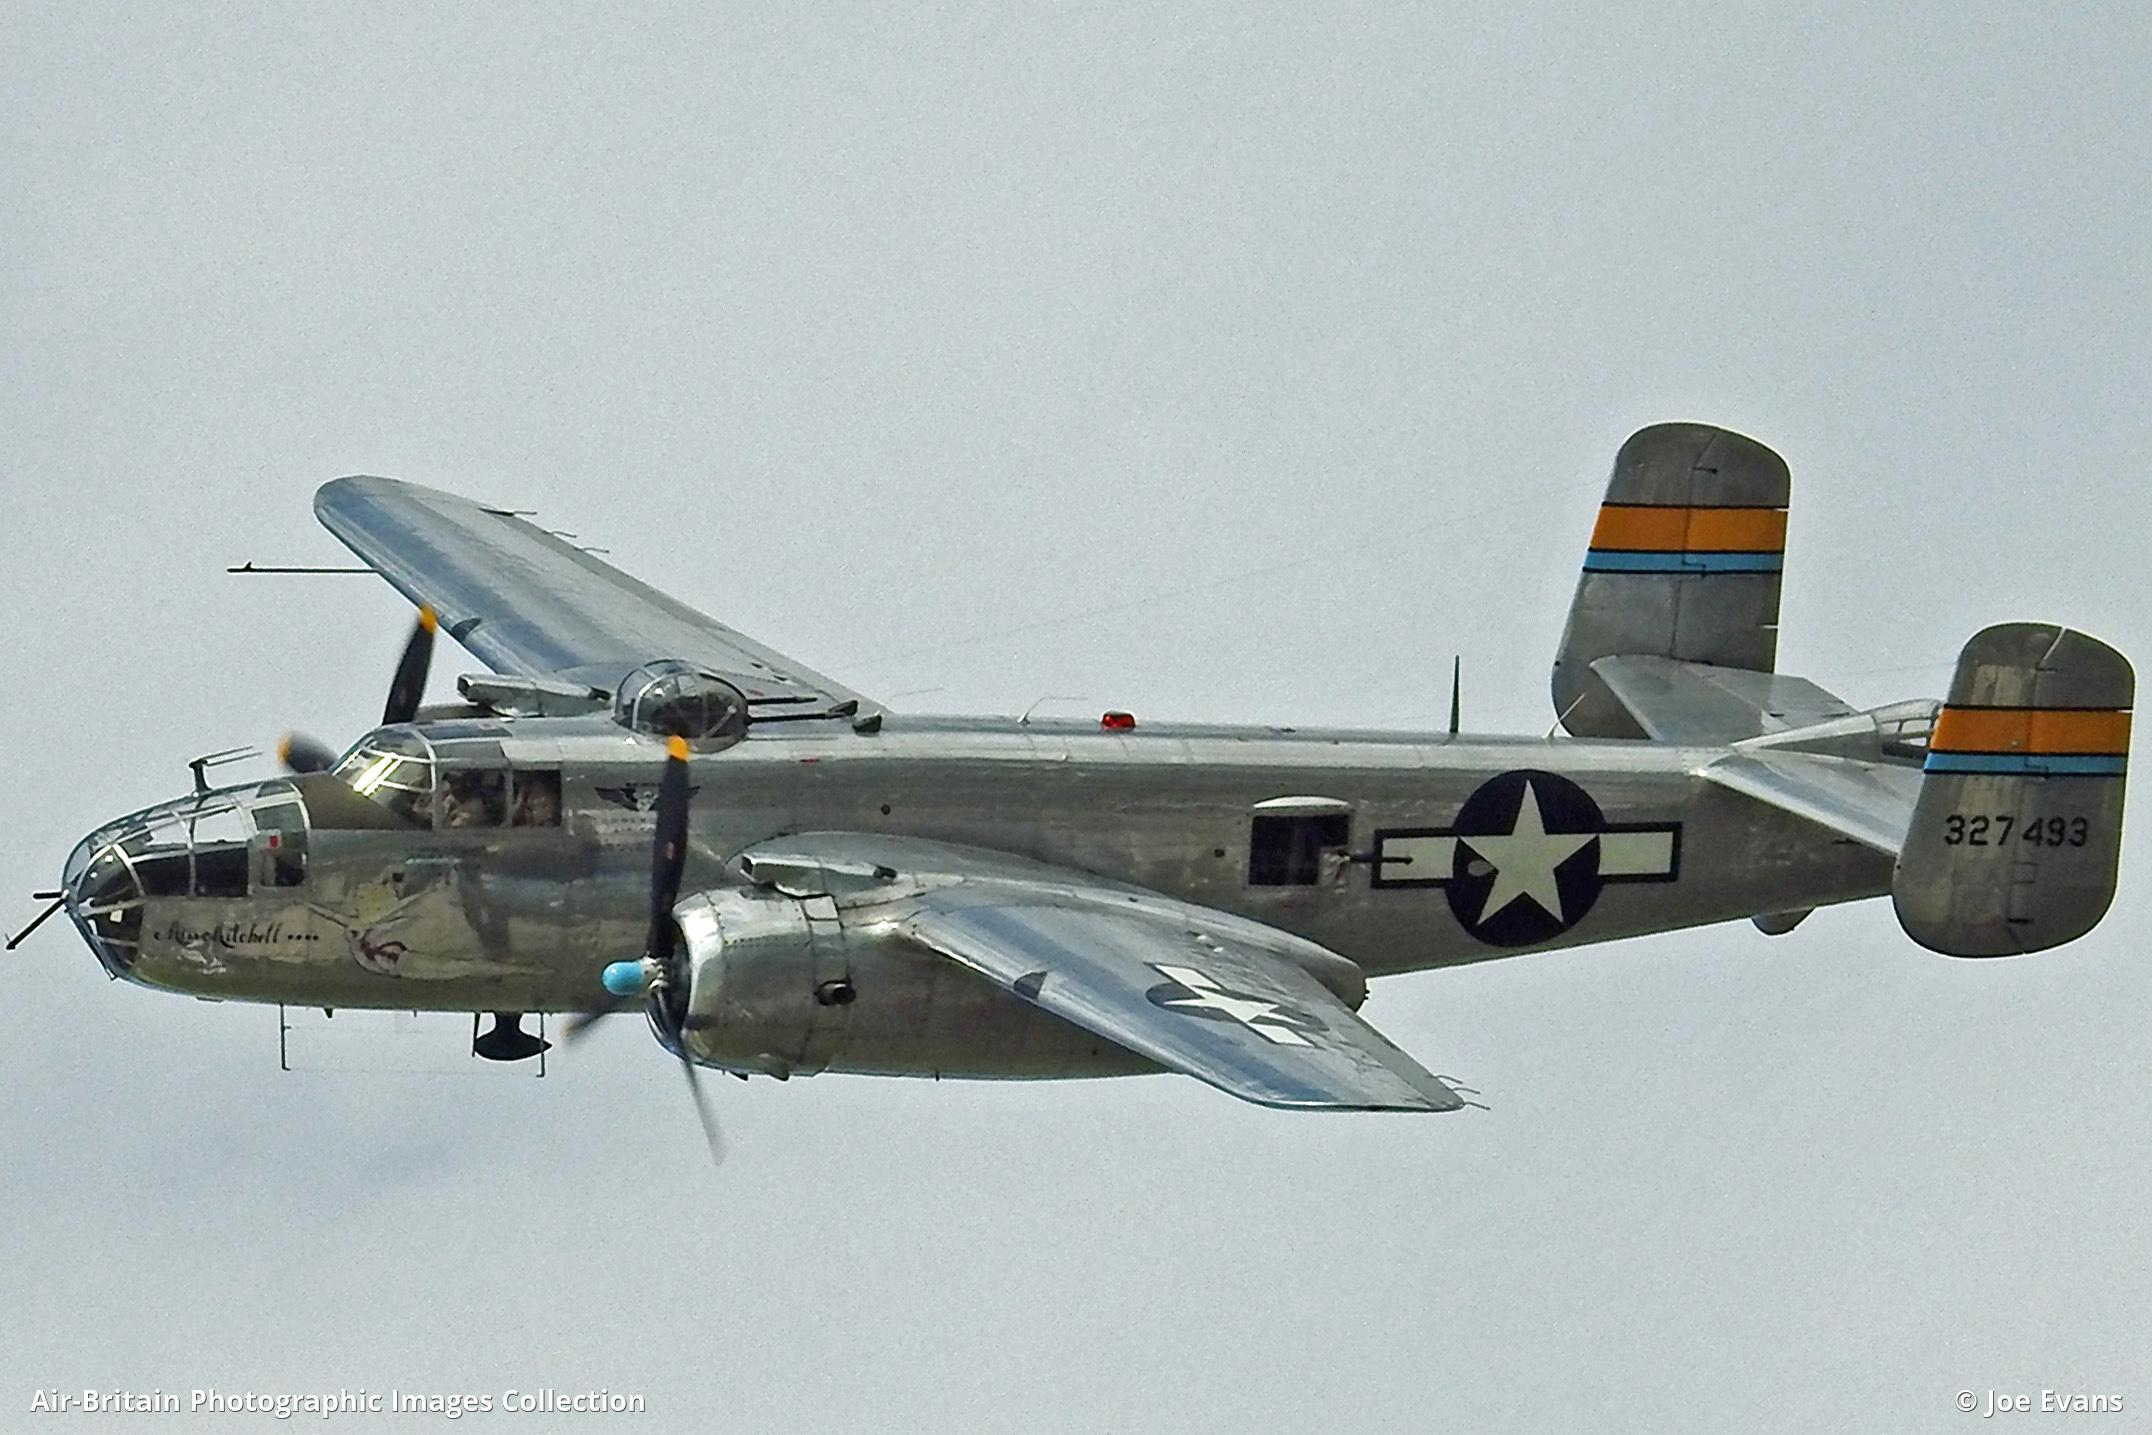 Aviation photographs of Operator: Commemorative Air Force